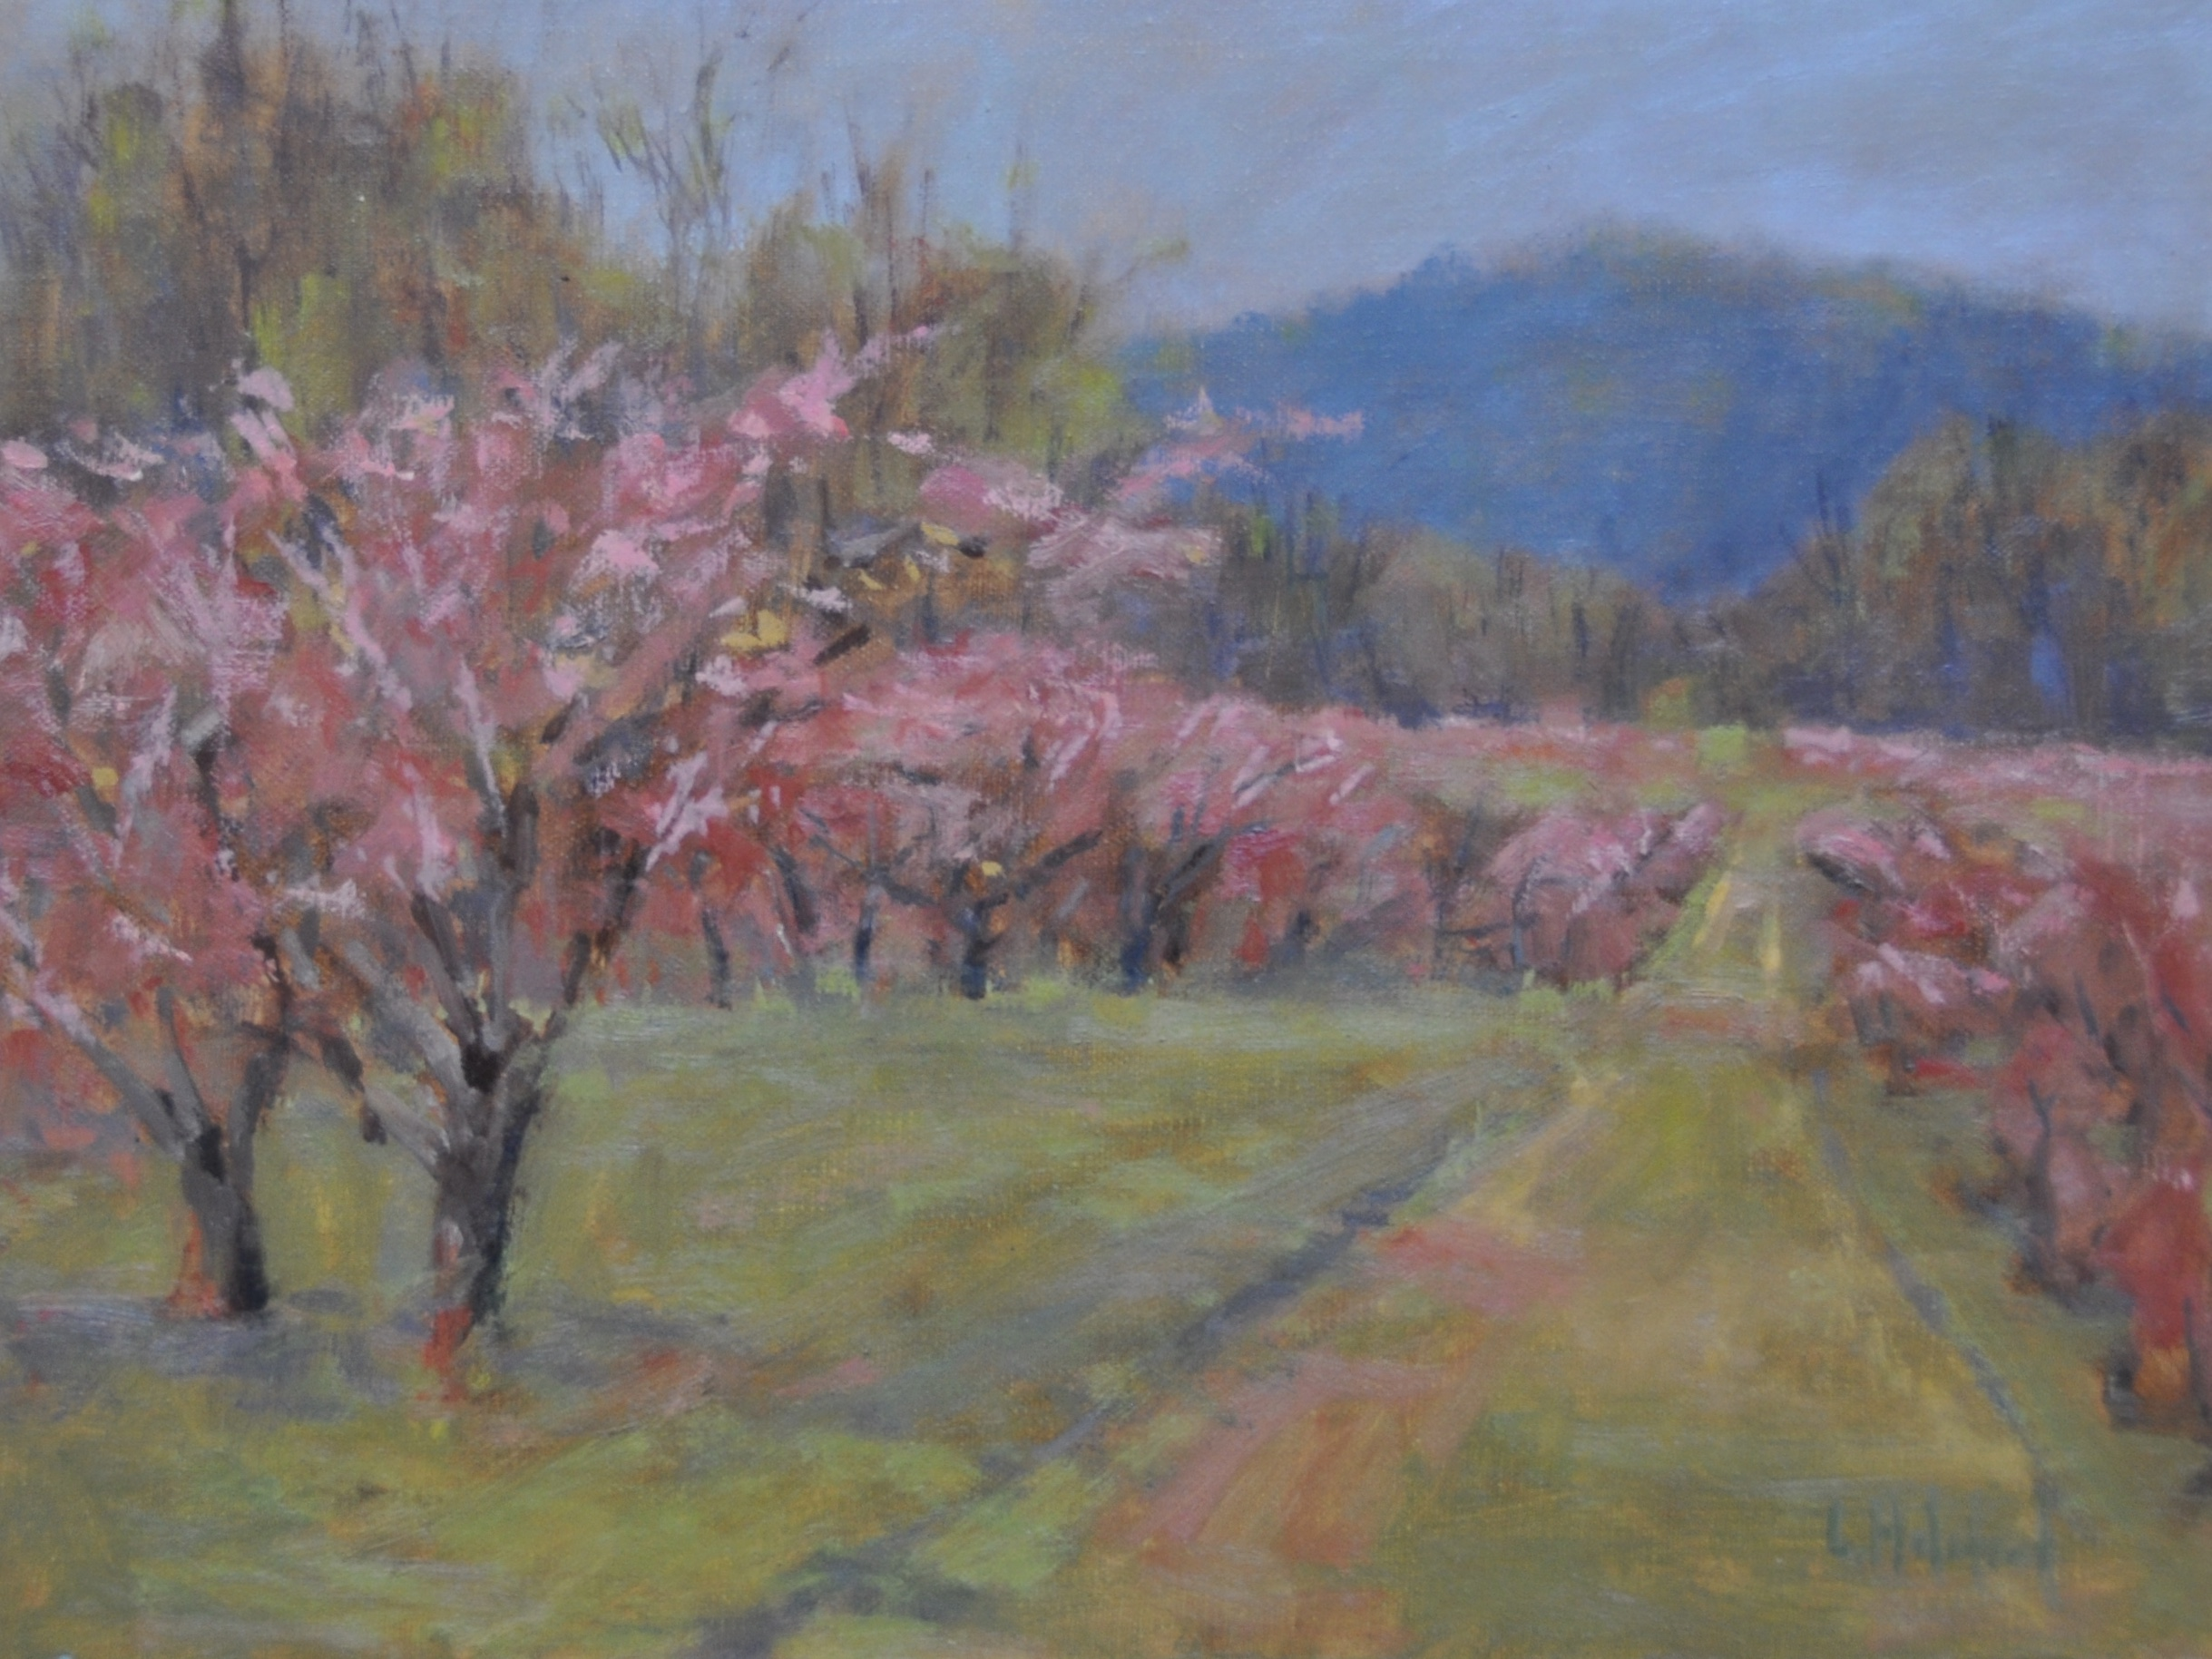 Orchard Pink, Oil on linen, 9 x 12, available